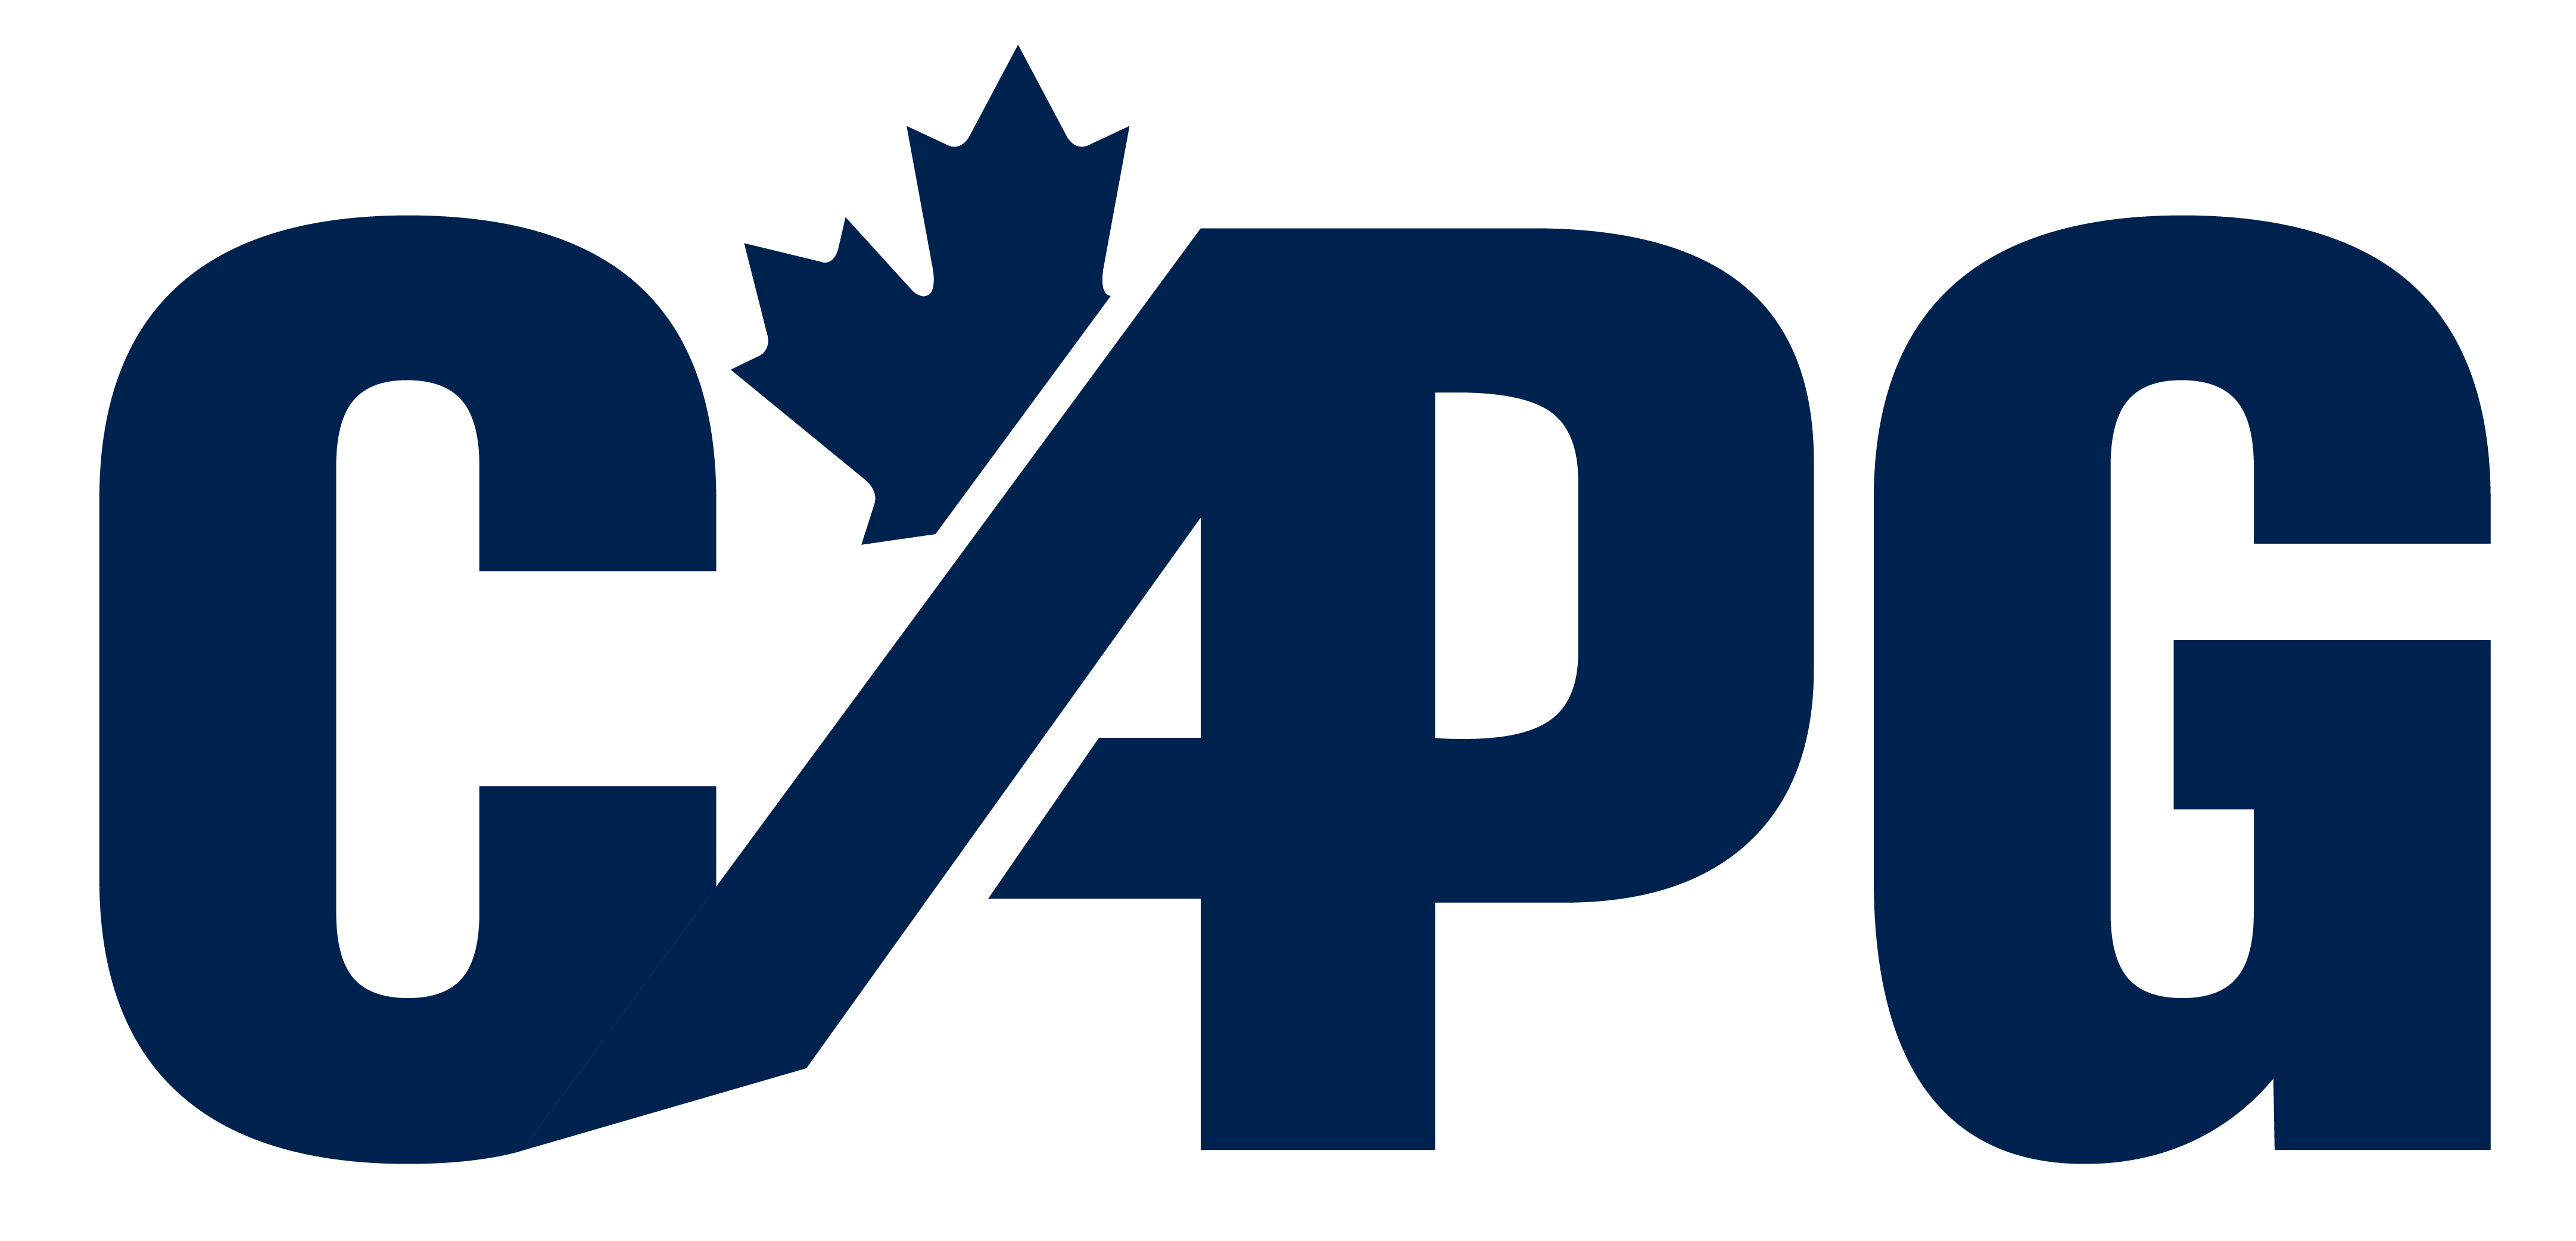 CAPG Conference 2021 - September 28th-30th